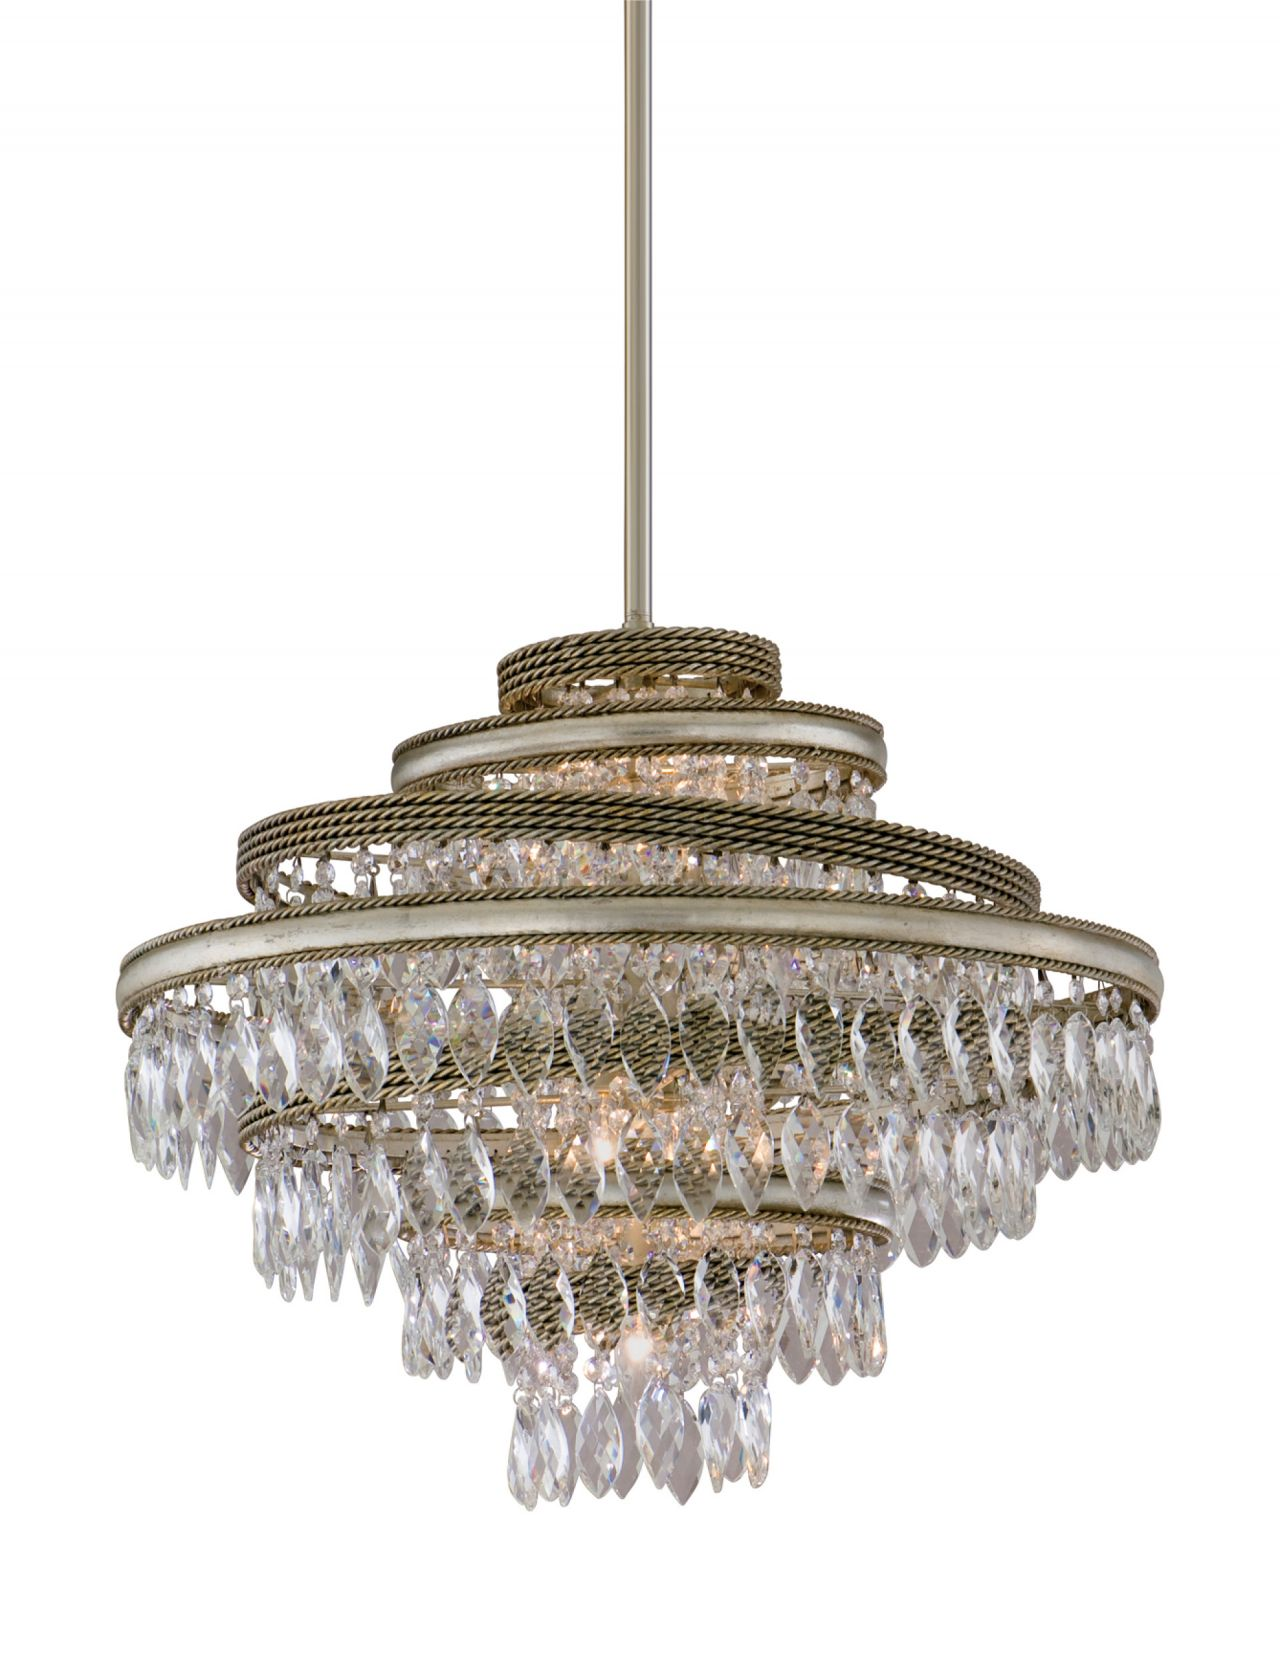 Diva 4 Light Pendant - Steelyard